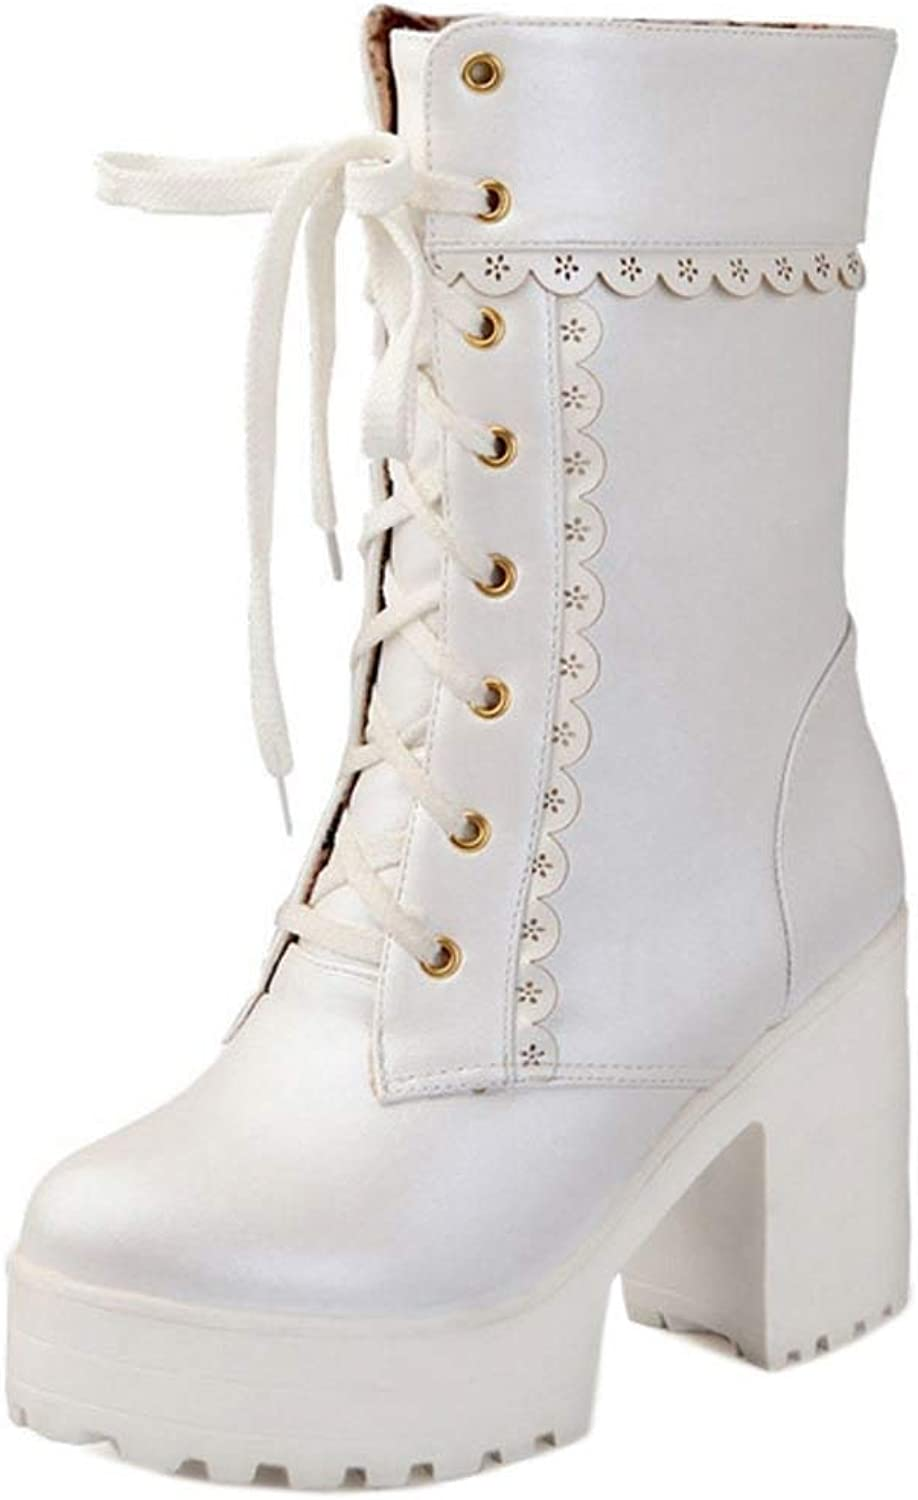 Unm Women Fashion Lace Up Autumn Winter Platform Boots Chunky Heel shoes